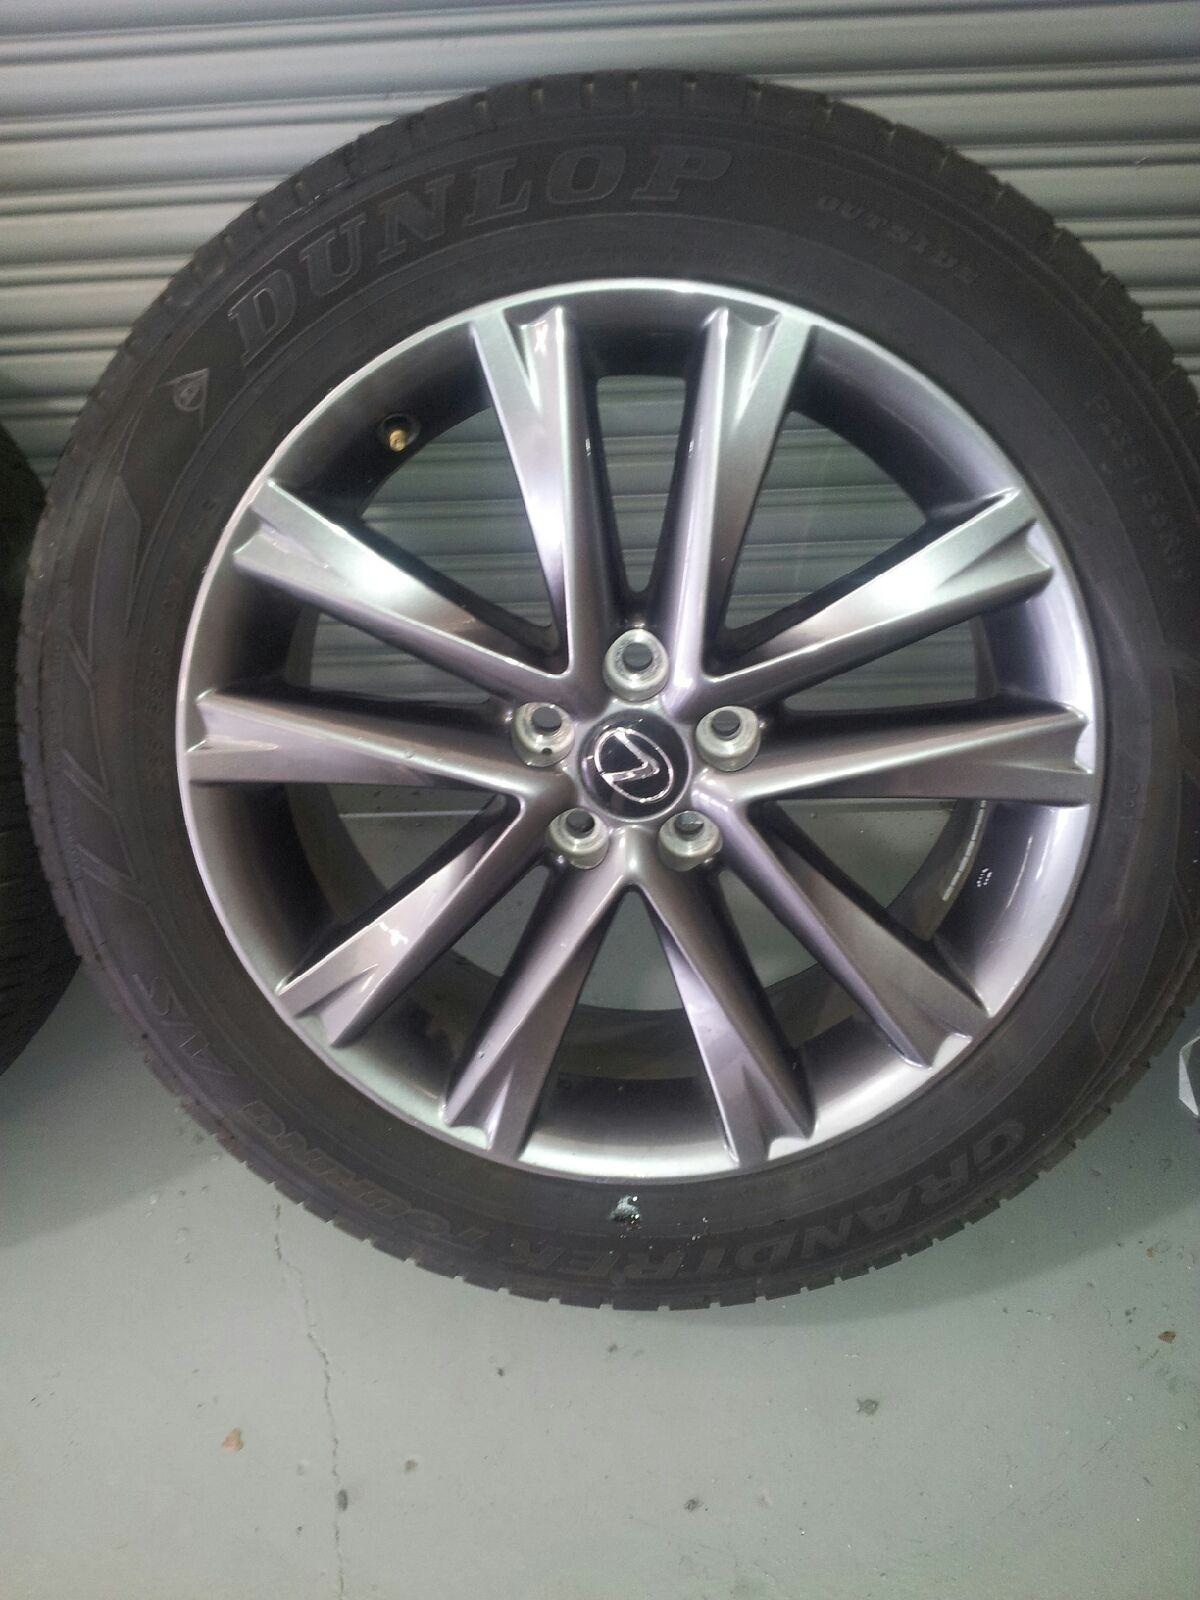 "TX OEM 2013 lexus RX350 f sport 19""s wheels and tires less than 5k"